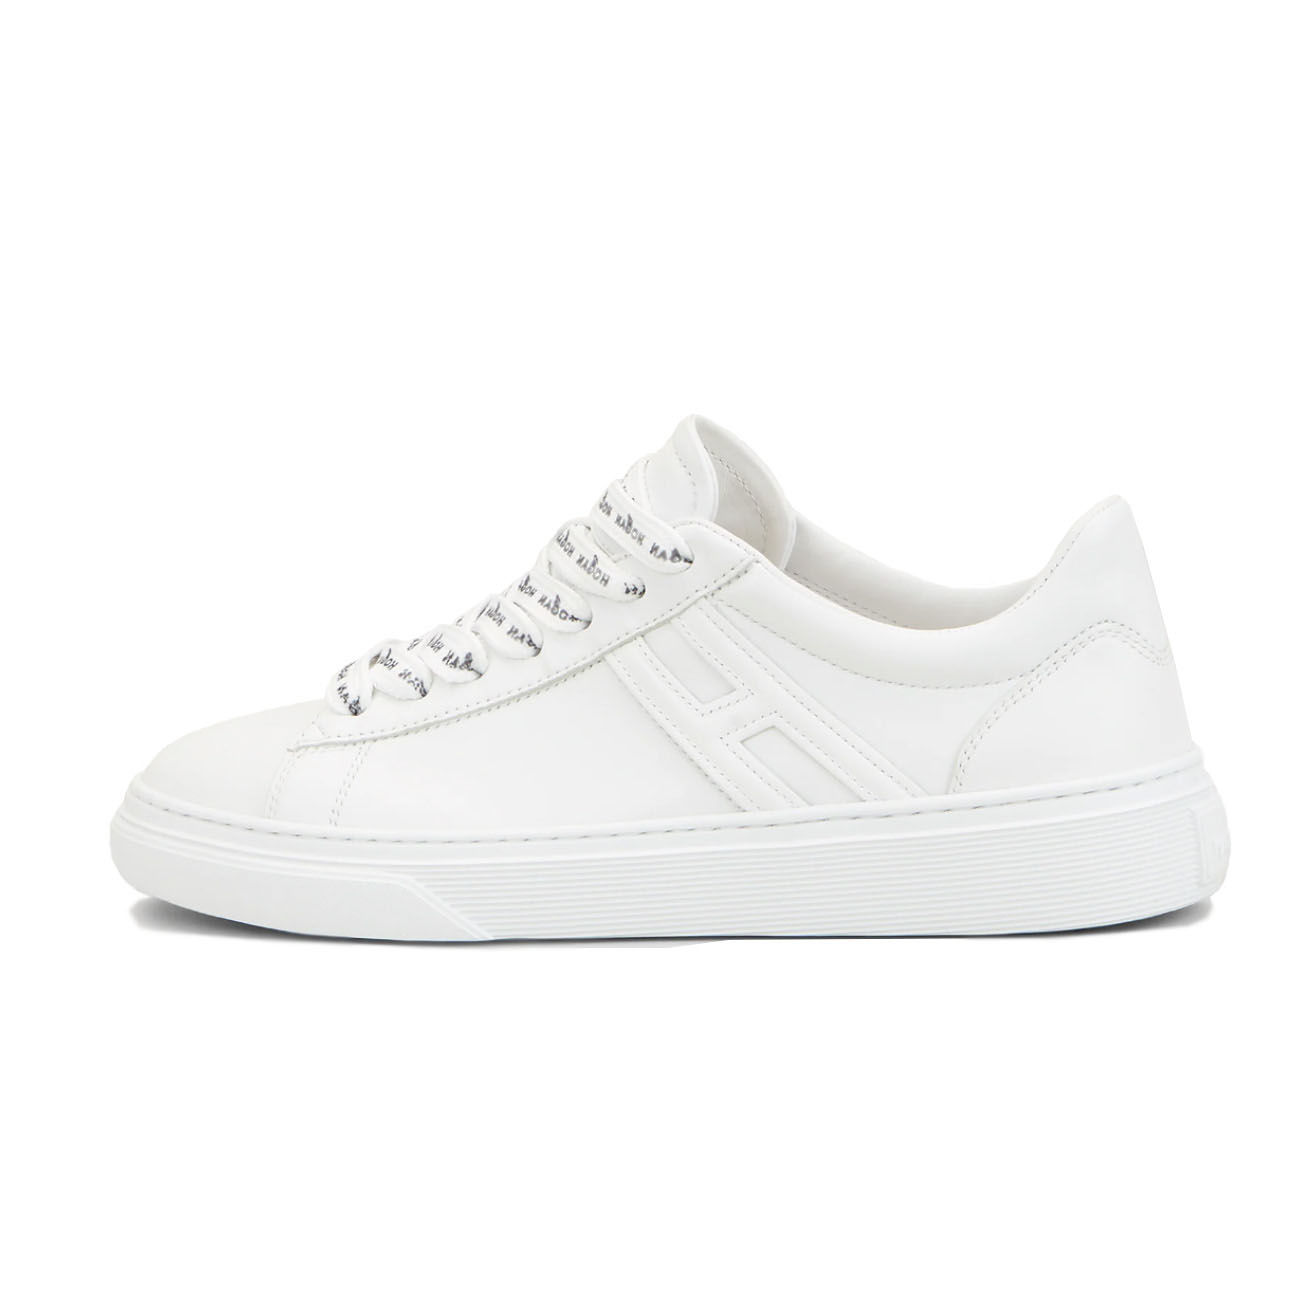 SNEAKERS H365 Donna Bianco 2108104936640